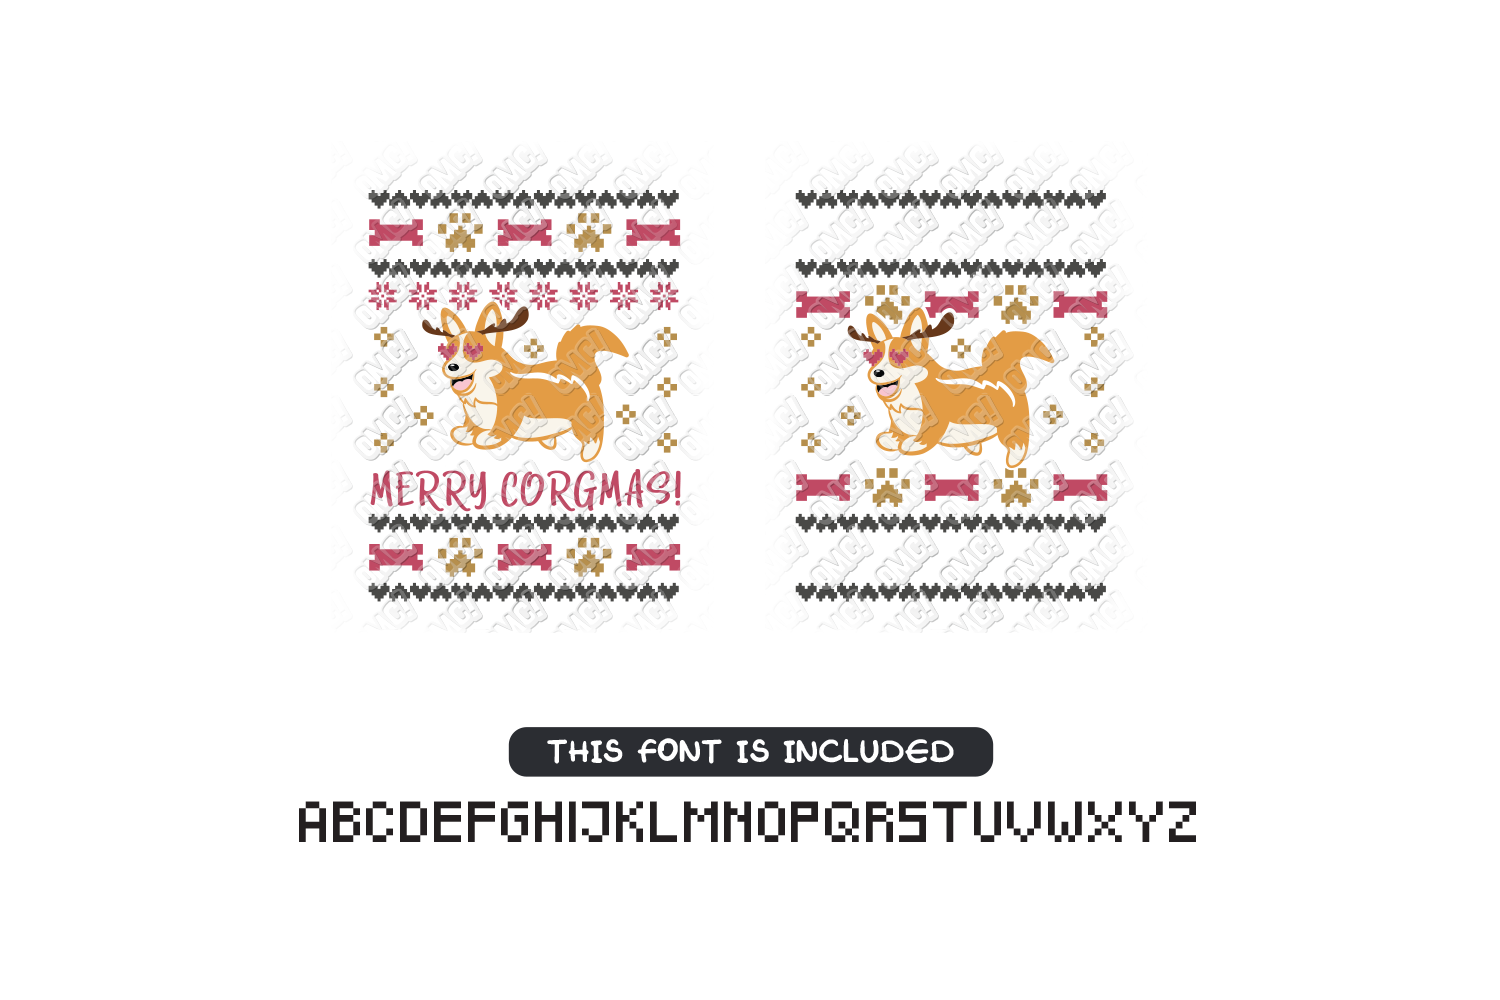 Dog Ugly Christmas SVG Template in SVG, DXF, PNG, EPS, JPG example image 4